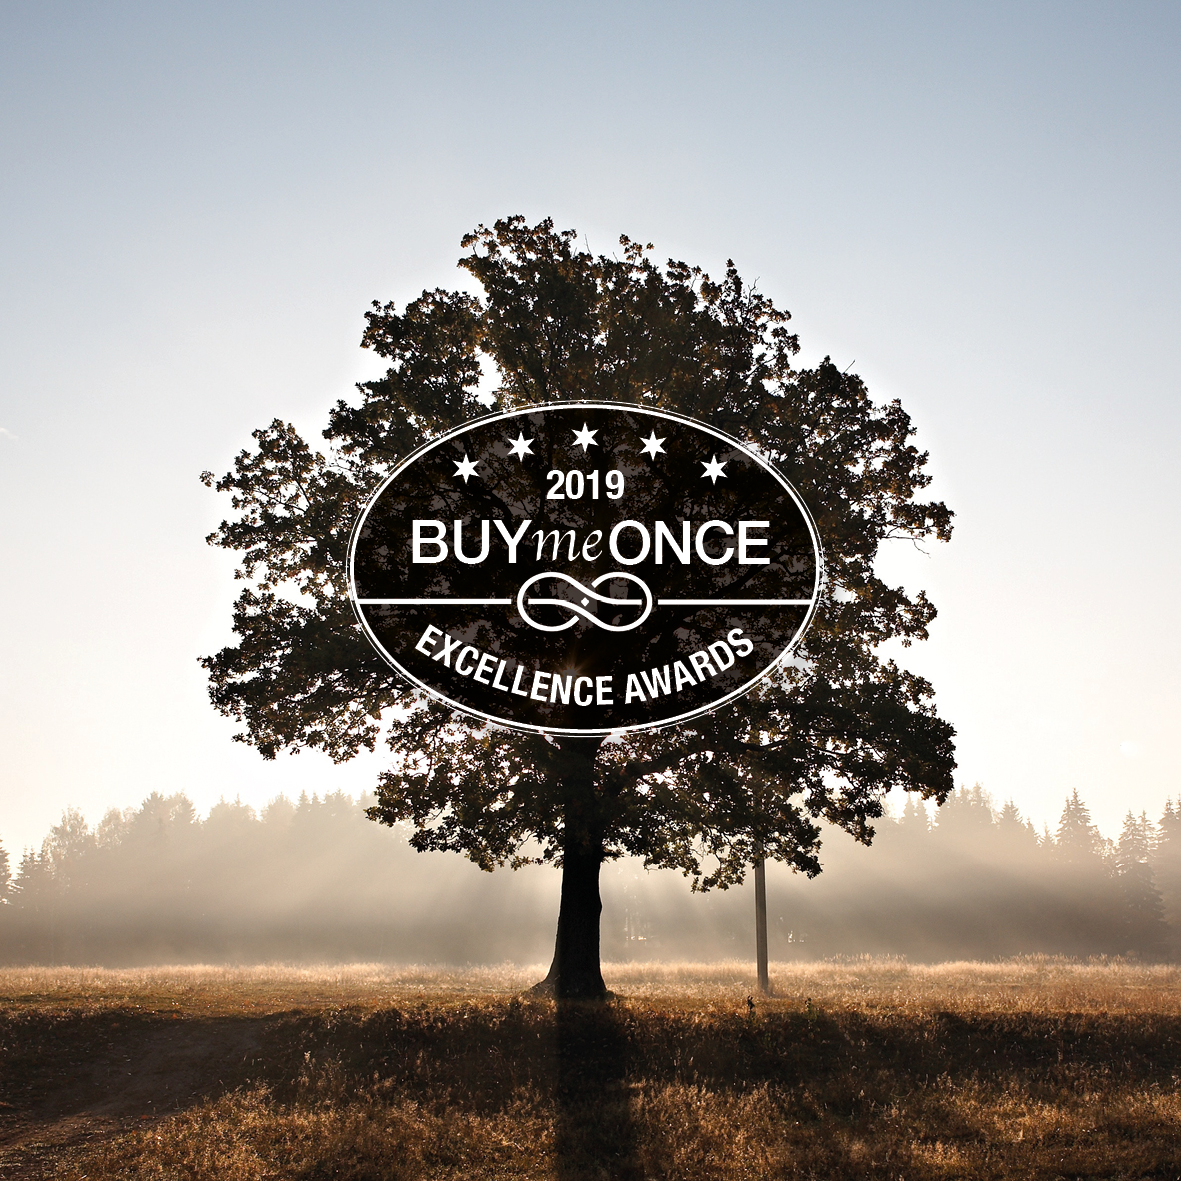 SOLID WINS IN THE 2019 BUYMEONCE EXCELLENCE AWARDS